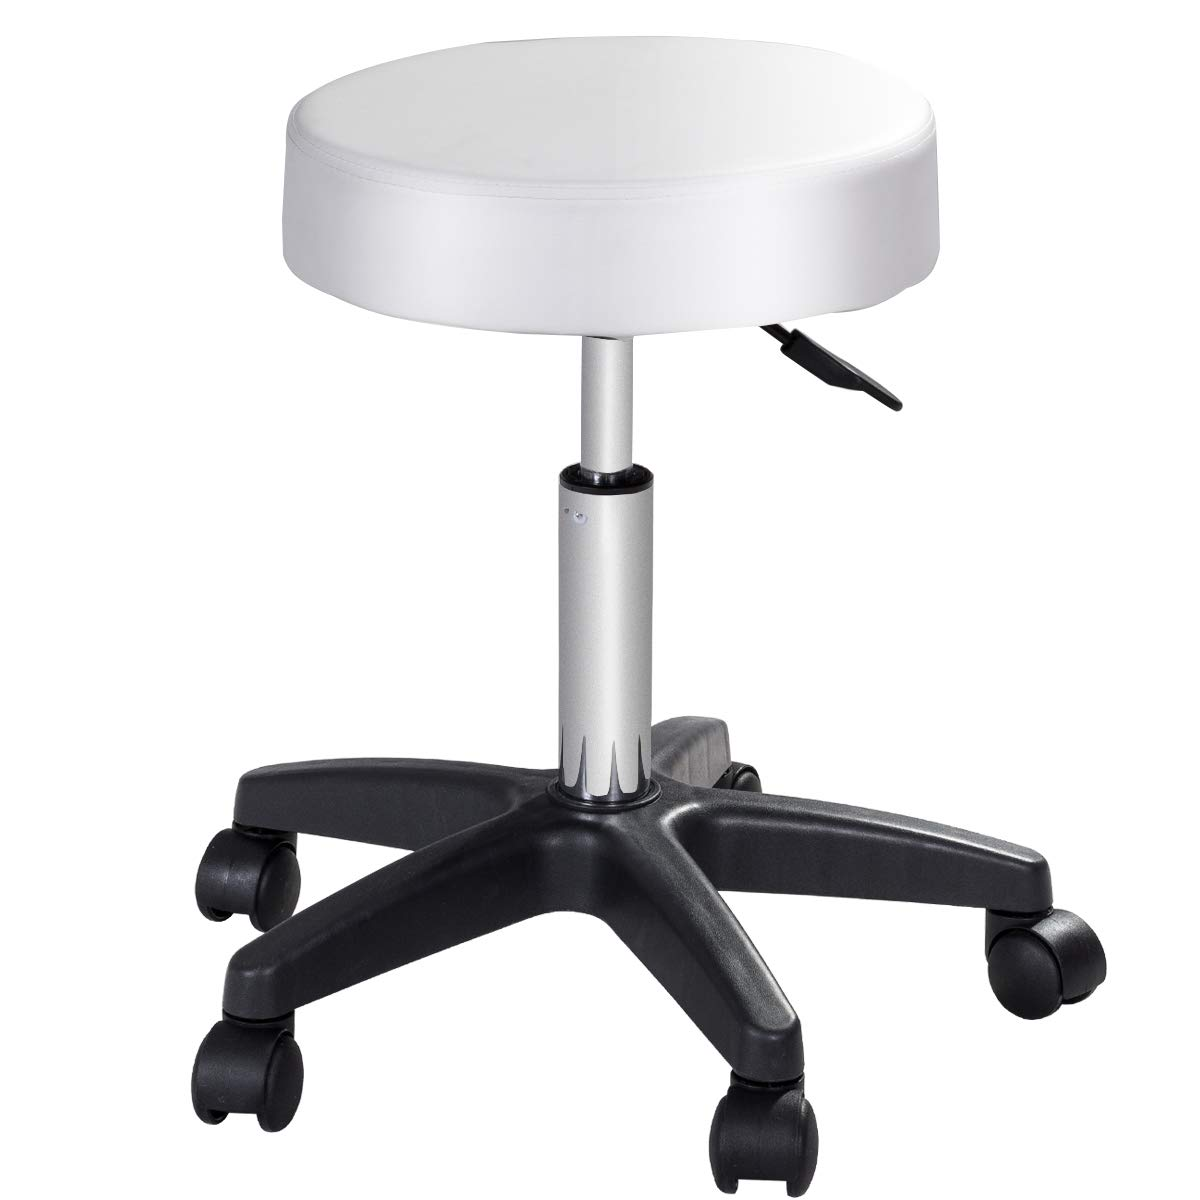 COSTWAY Adjustable Hydraulic Rolling Stool, Swivel Height Bar Stools, 360 Degree Rotation Stool Chair with Casters Wheels for Tattoo Facial Spa Massage White